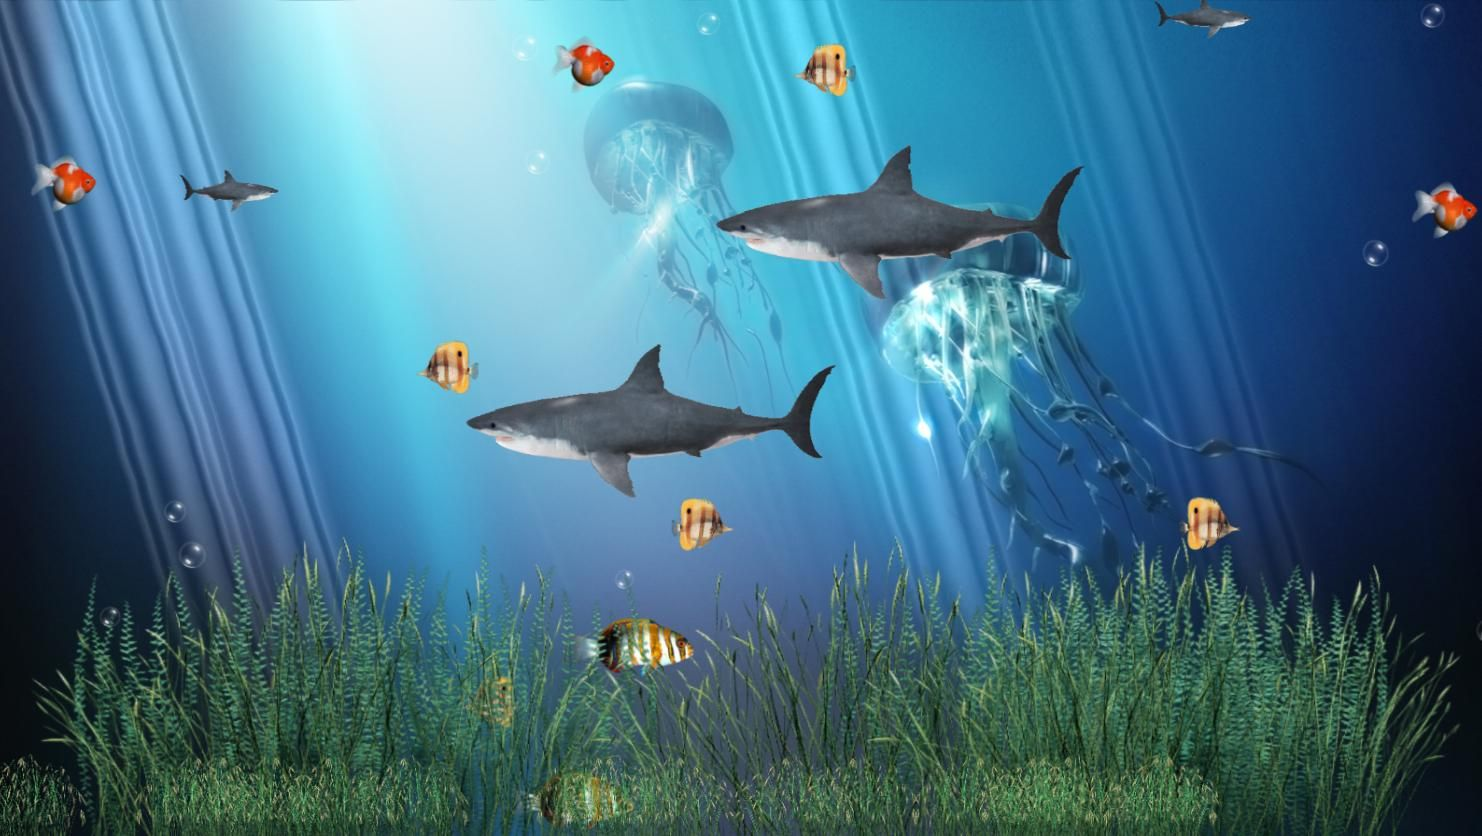 3d Motion Screensavers And Wallpaper Coral Reef Aquarium Animated Wallpaper 1 0 Free Animated Wallpaper Screen Savers Wallpapers Fish Wallpaper